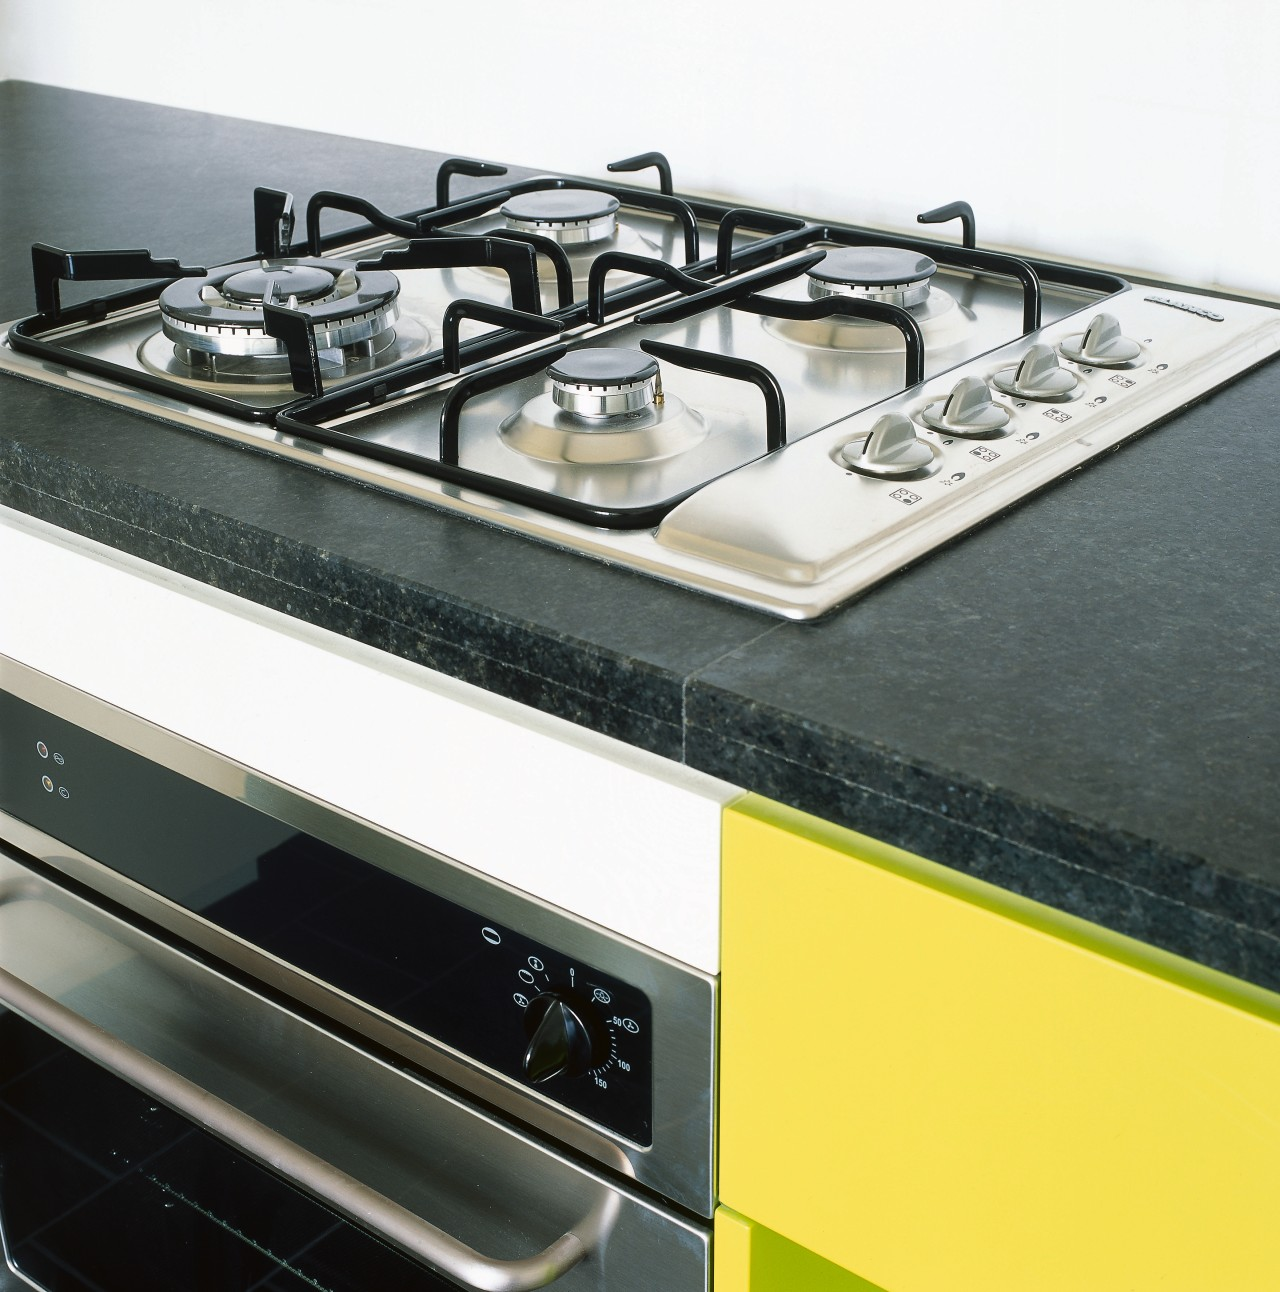 view of the bianco kitchen appliances gas stove, home appliance, kitchen stove, white, black